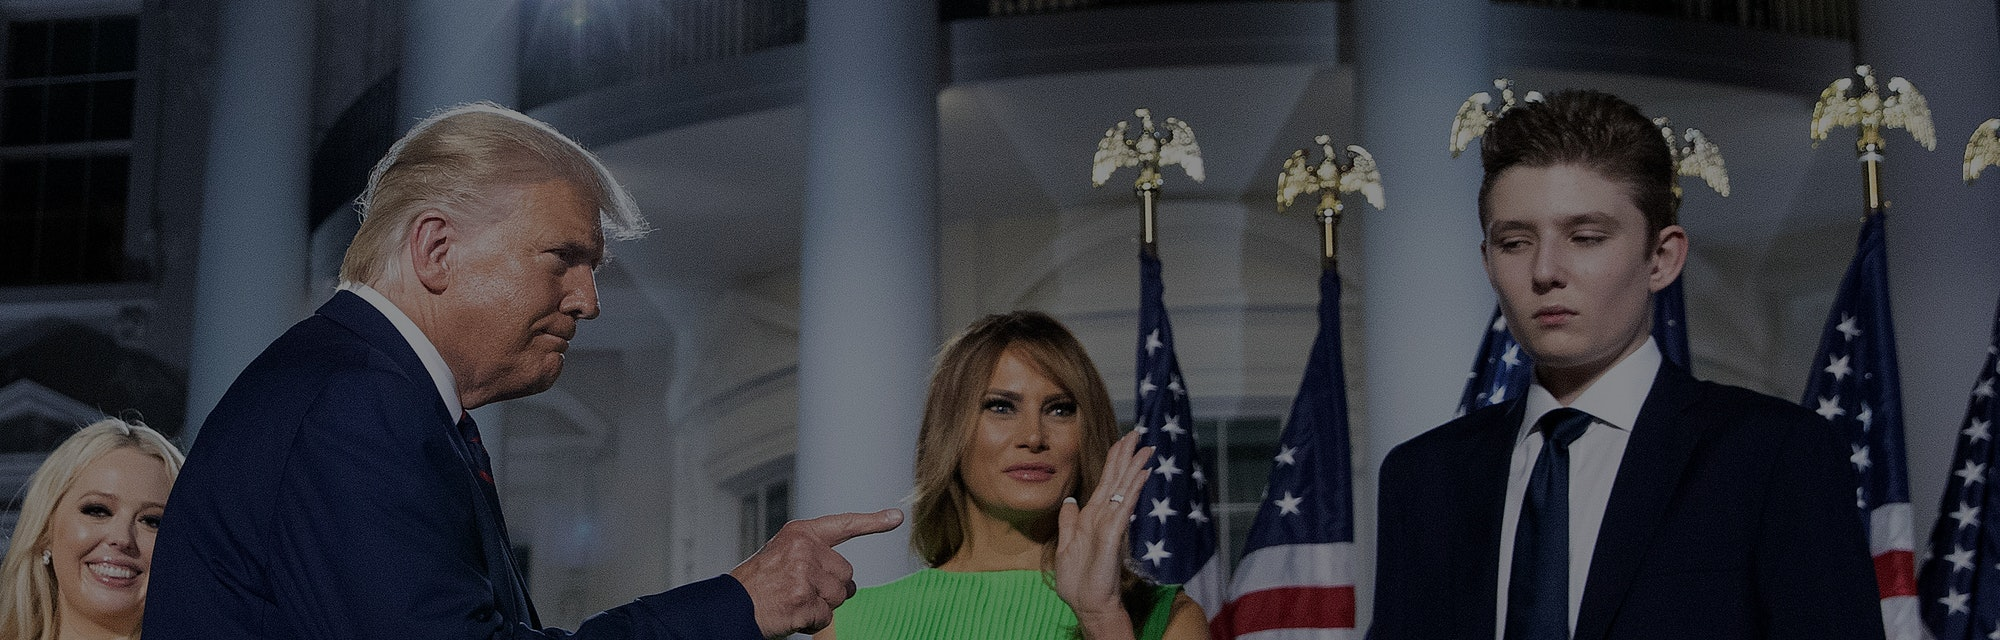 WASHINGTON, DC - AUGUST 27: U.S. President Donald Trump (L) gestures toward first lady Melania Trump and his son Barron Trump after delivering his acceptance speech for the Republican presidential nomination on the South Lawn of the White House August 27, 2020 in Washington, DC. Trump gave the speech in front of 1500 invited guests. (Photo by Chip Somodevilla/Getty Images)